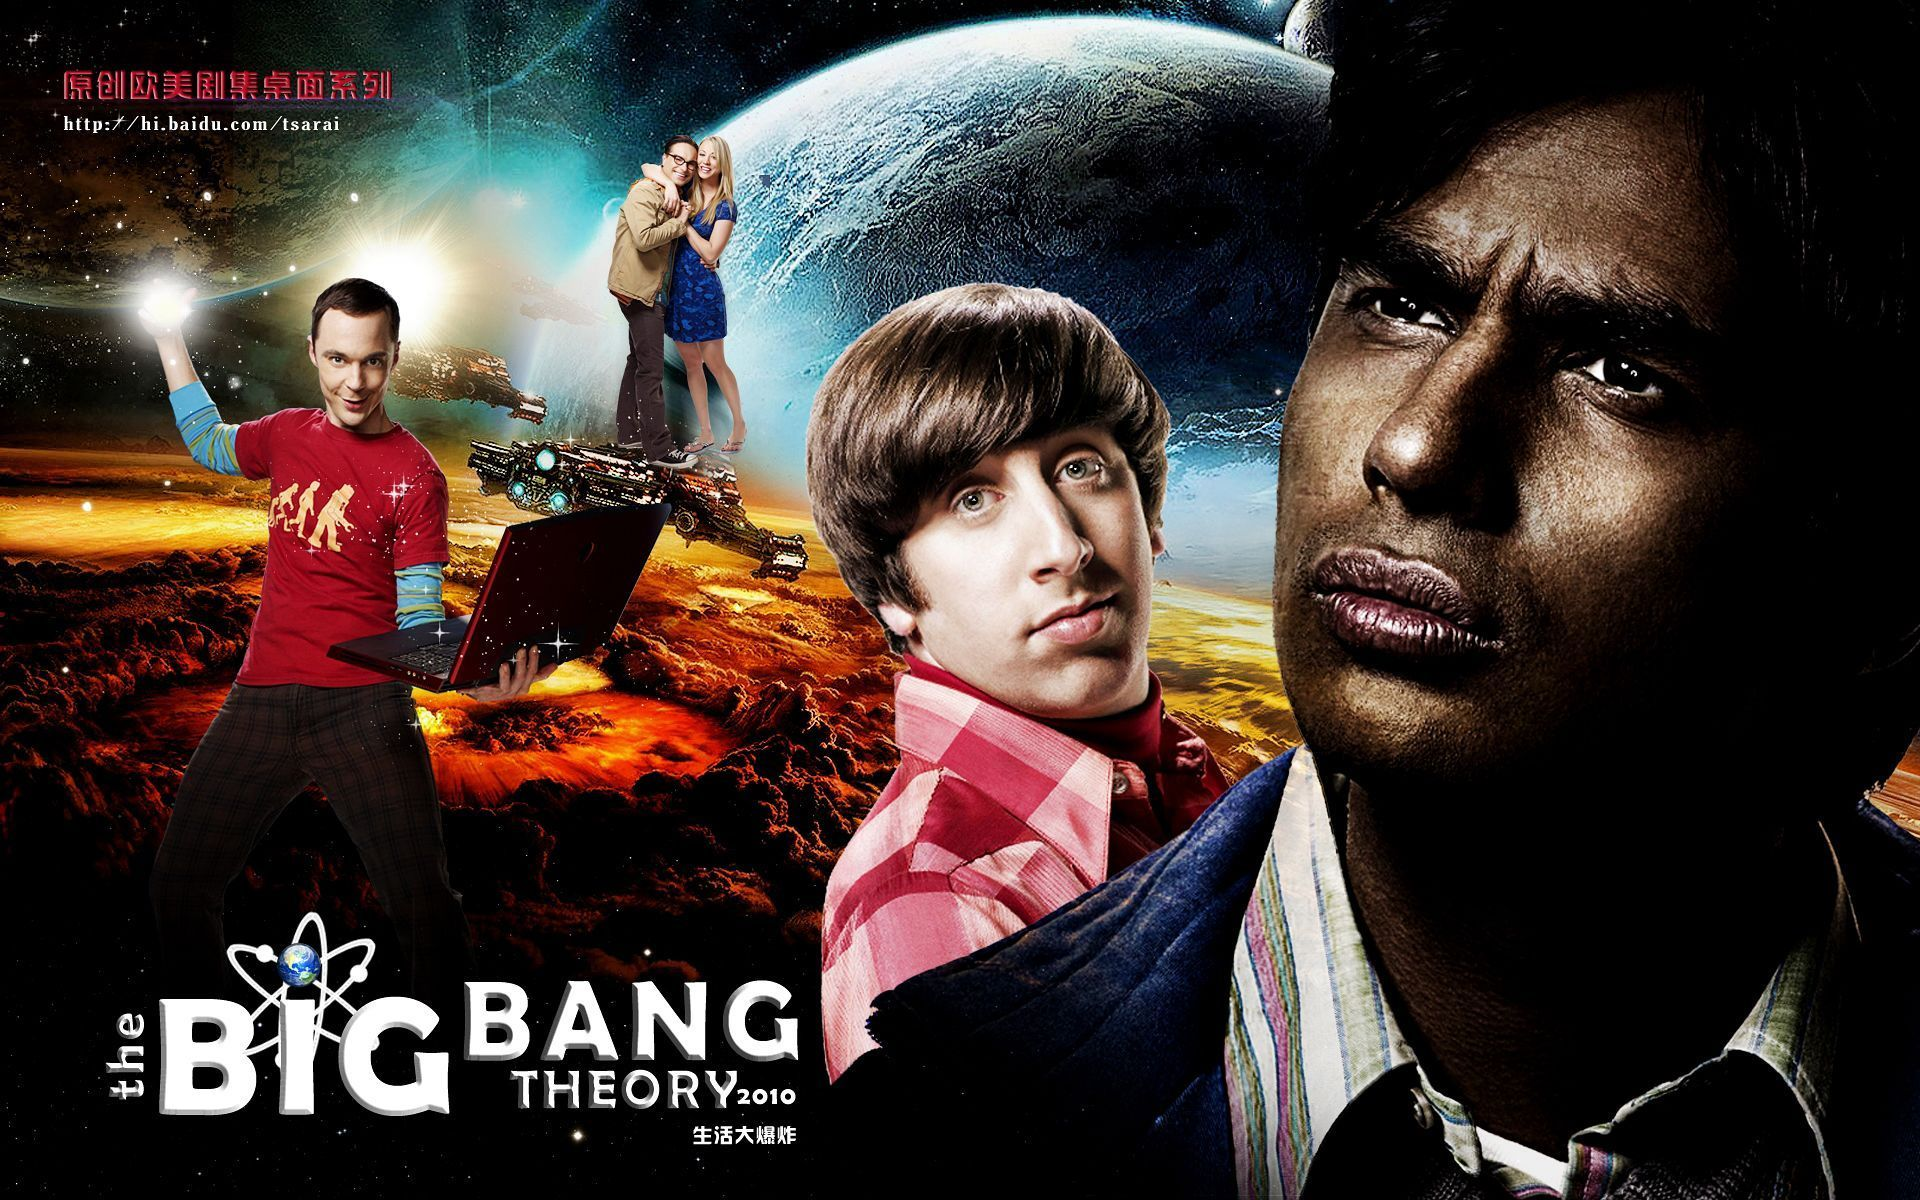 the-big-bang-theory-the-big-bang-theory-14674935-1920-1200 (1)